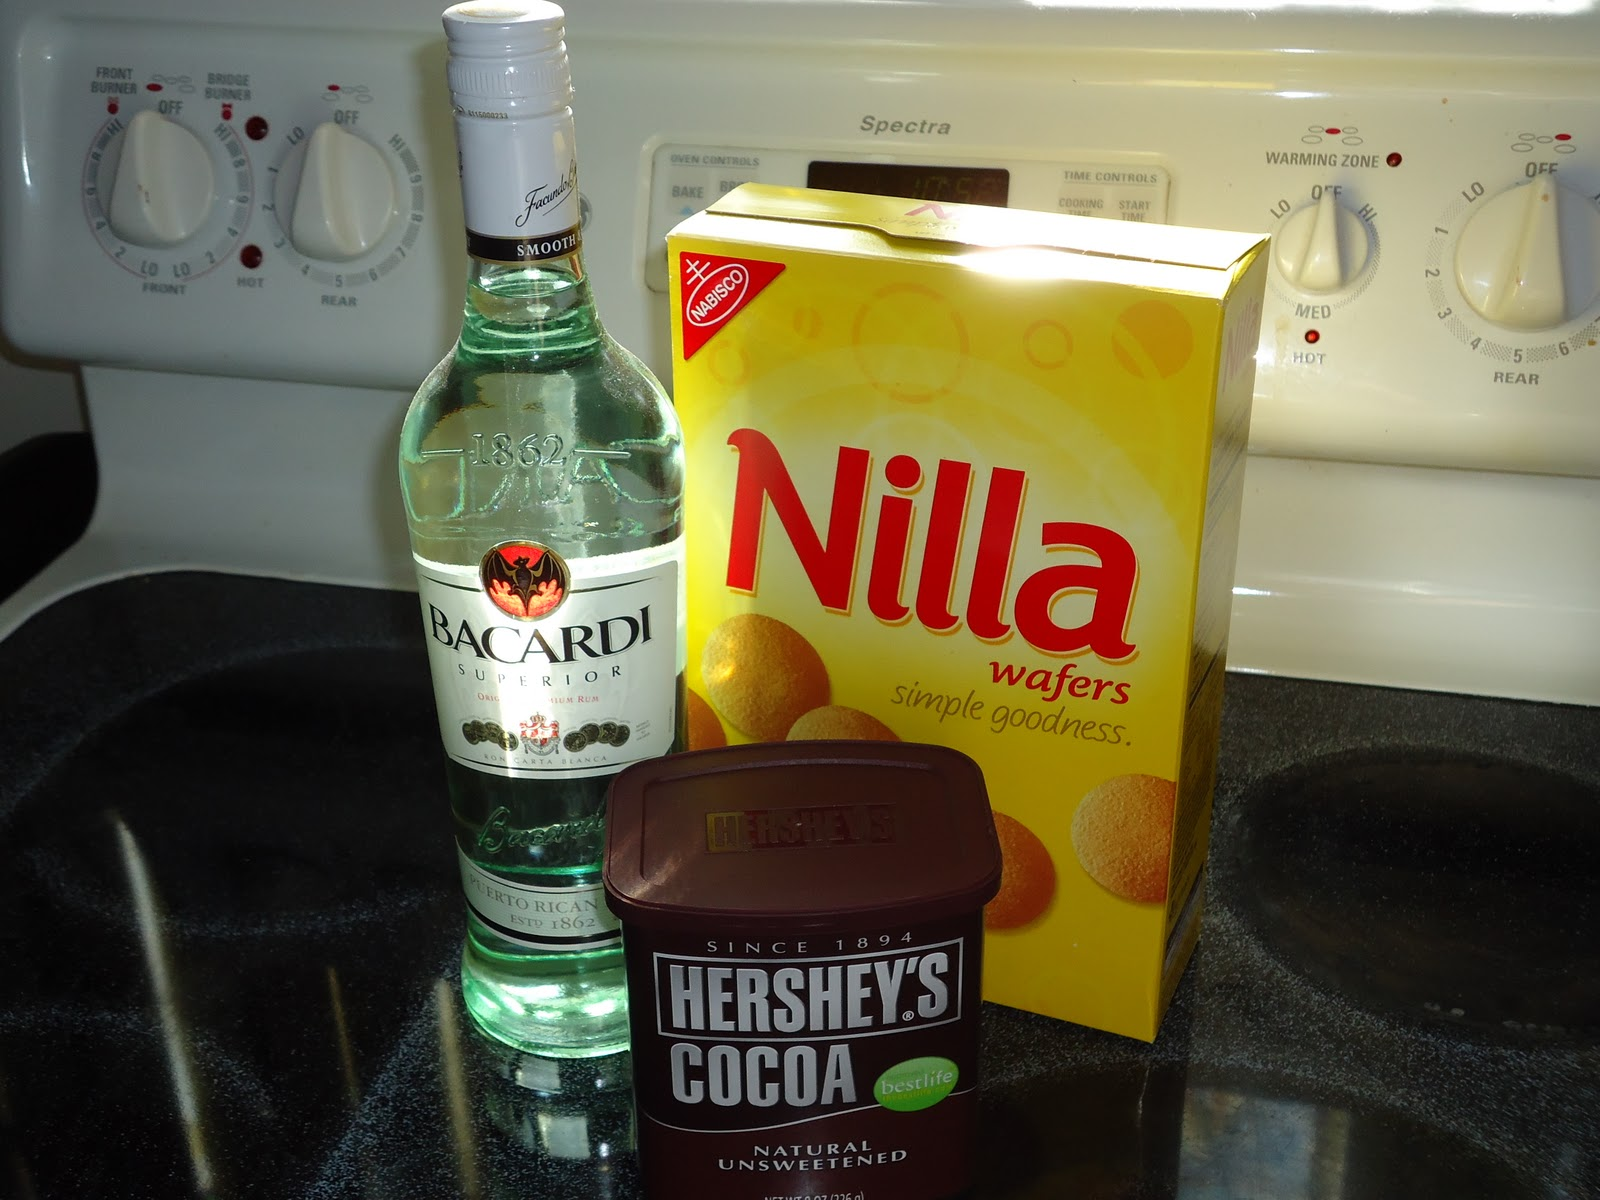 ... help of Bacardi Light Rum, Hershey's baking Cocoa and Nilla Wafers